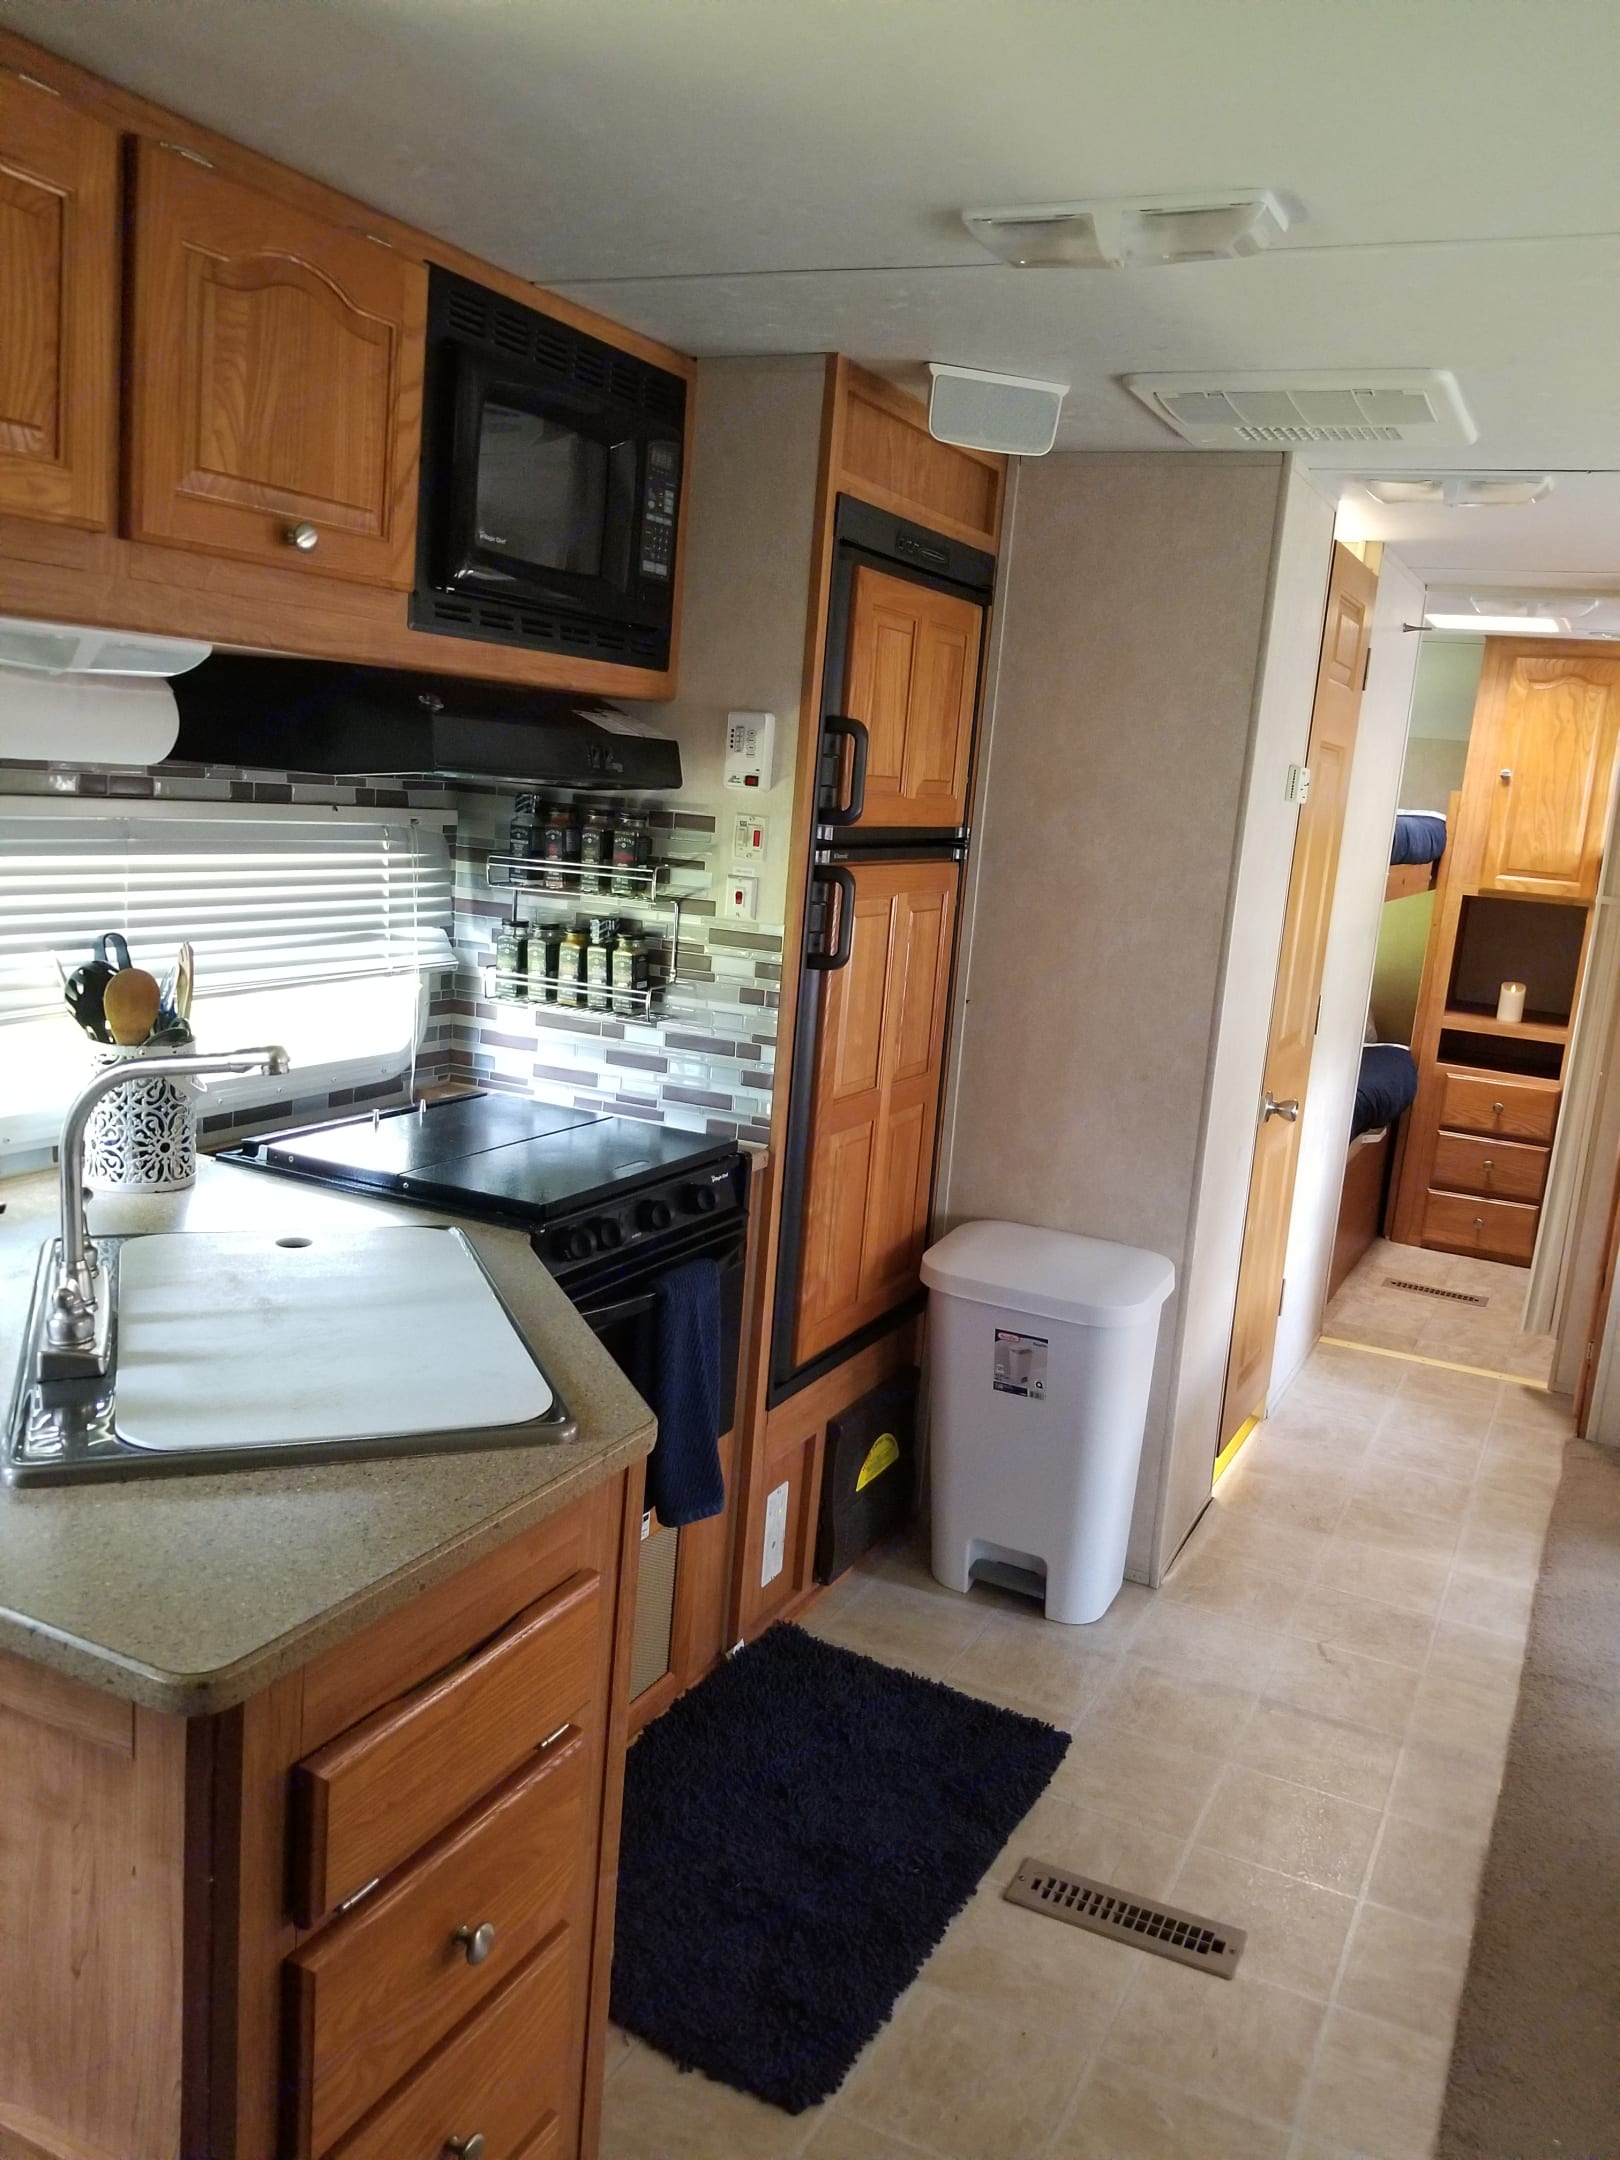 Kitchen with modern backsplash with all amenities.  Fully loaded kitchen down to spices!. Featherlight Trailers Flagstaff 2010